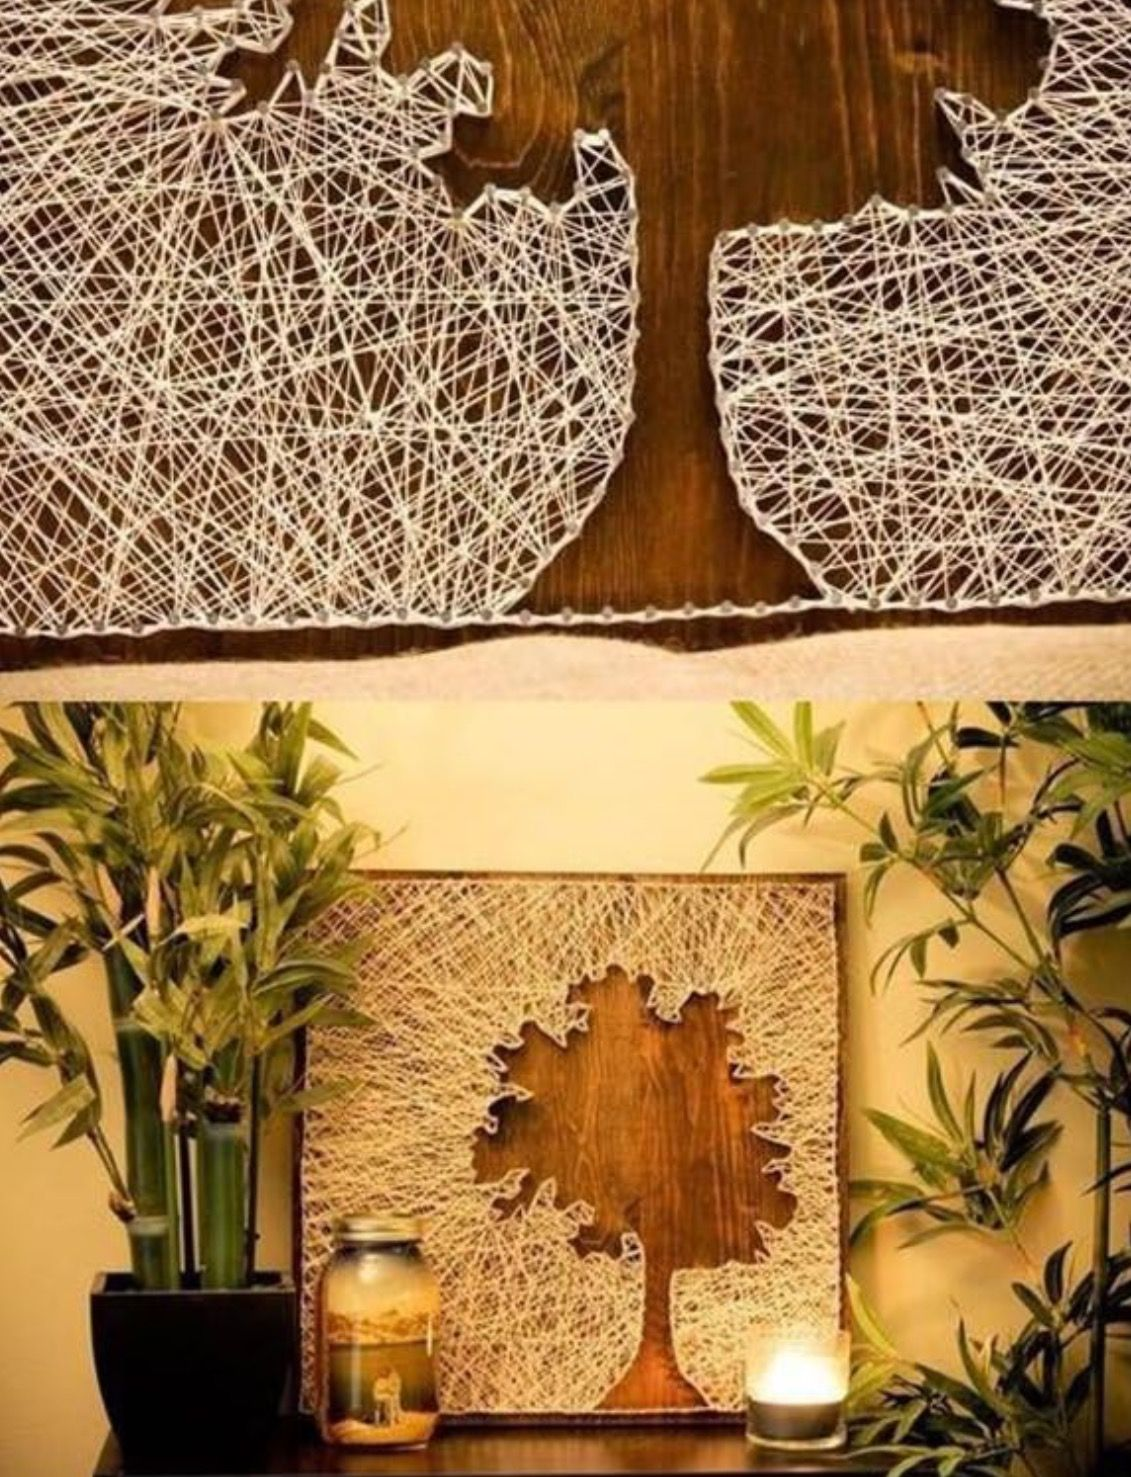 Pin by Crystal Lynnette on Love this! | Pinterest | String art